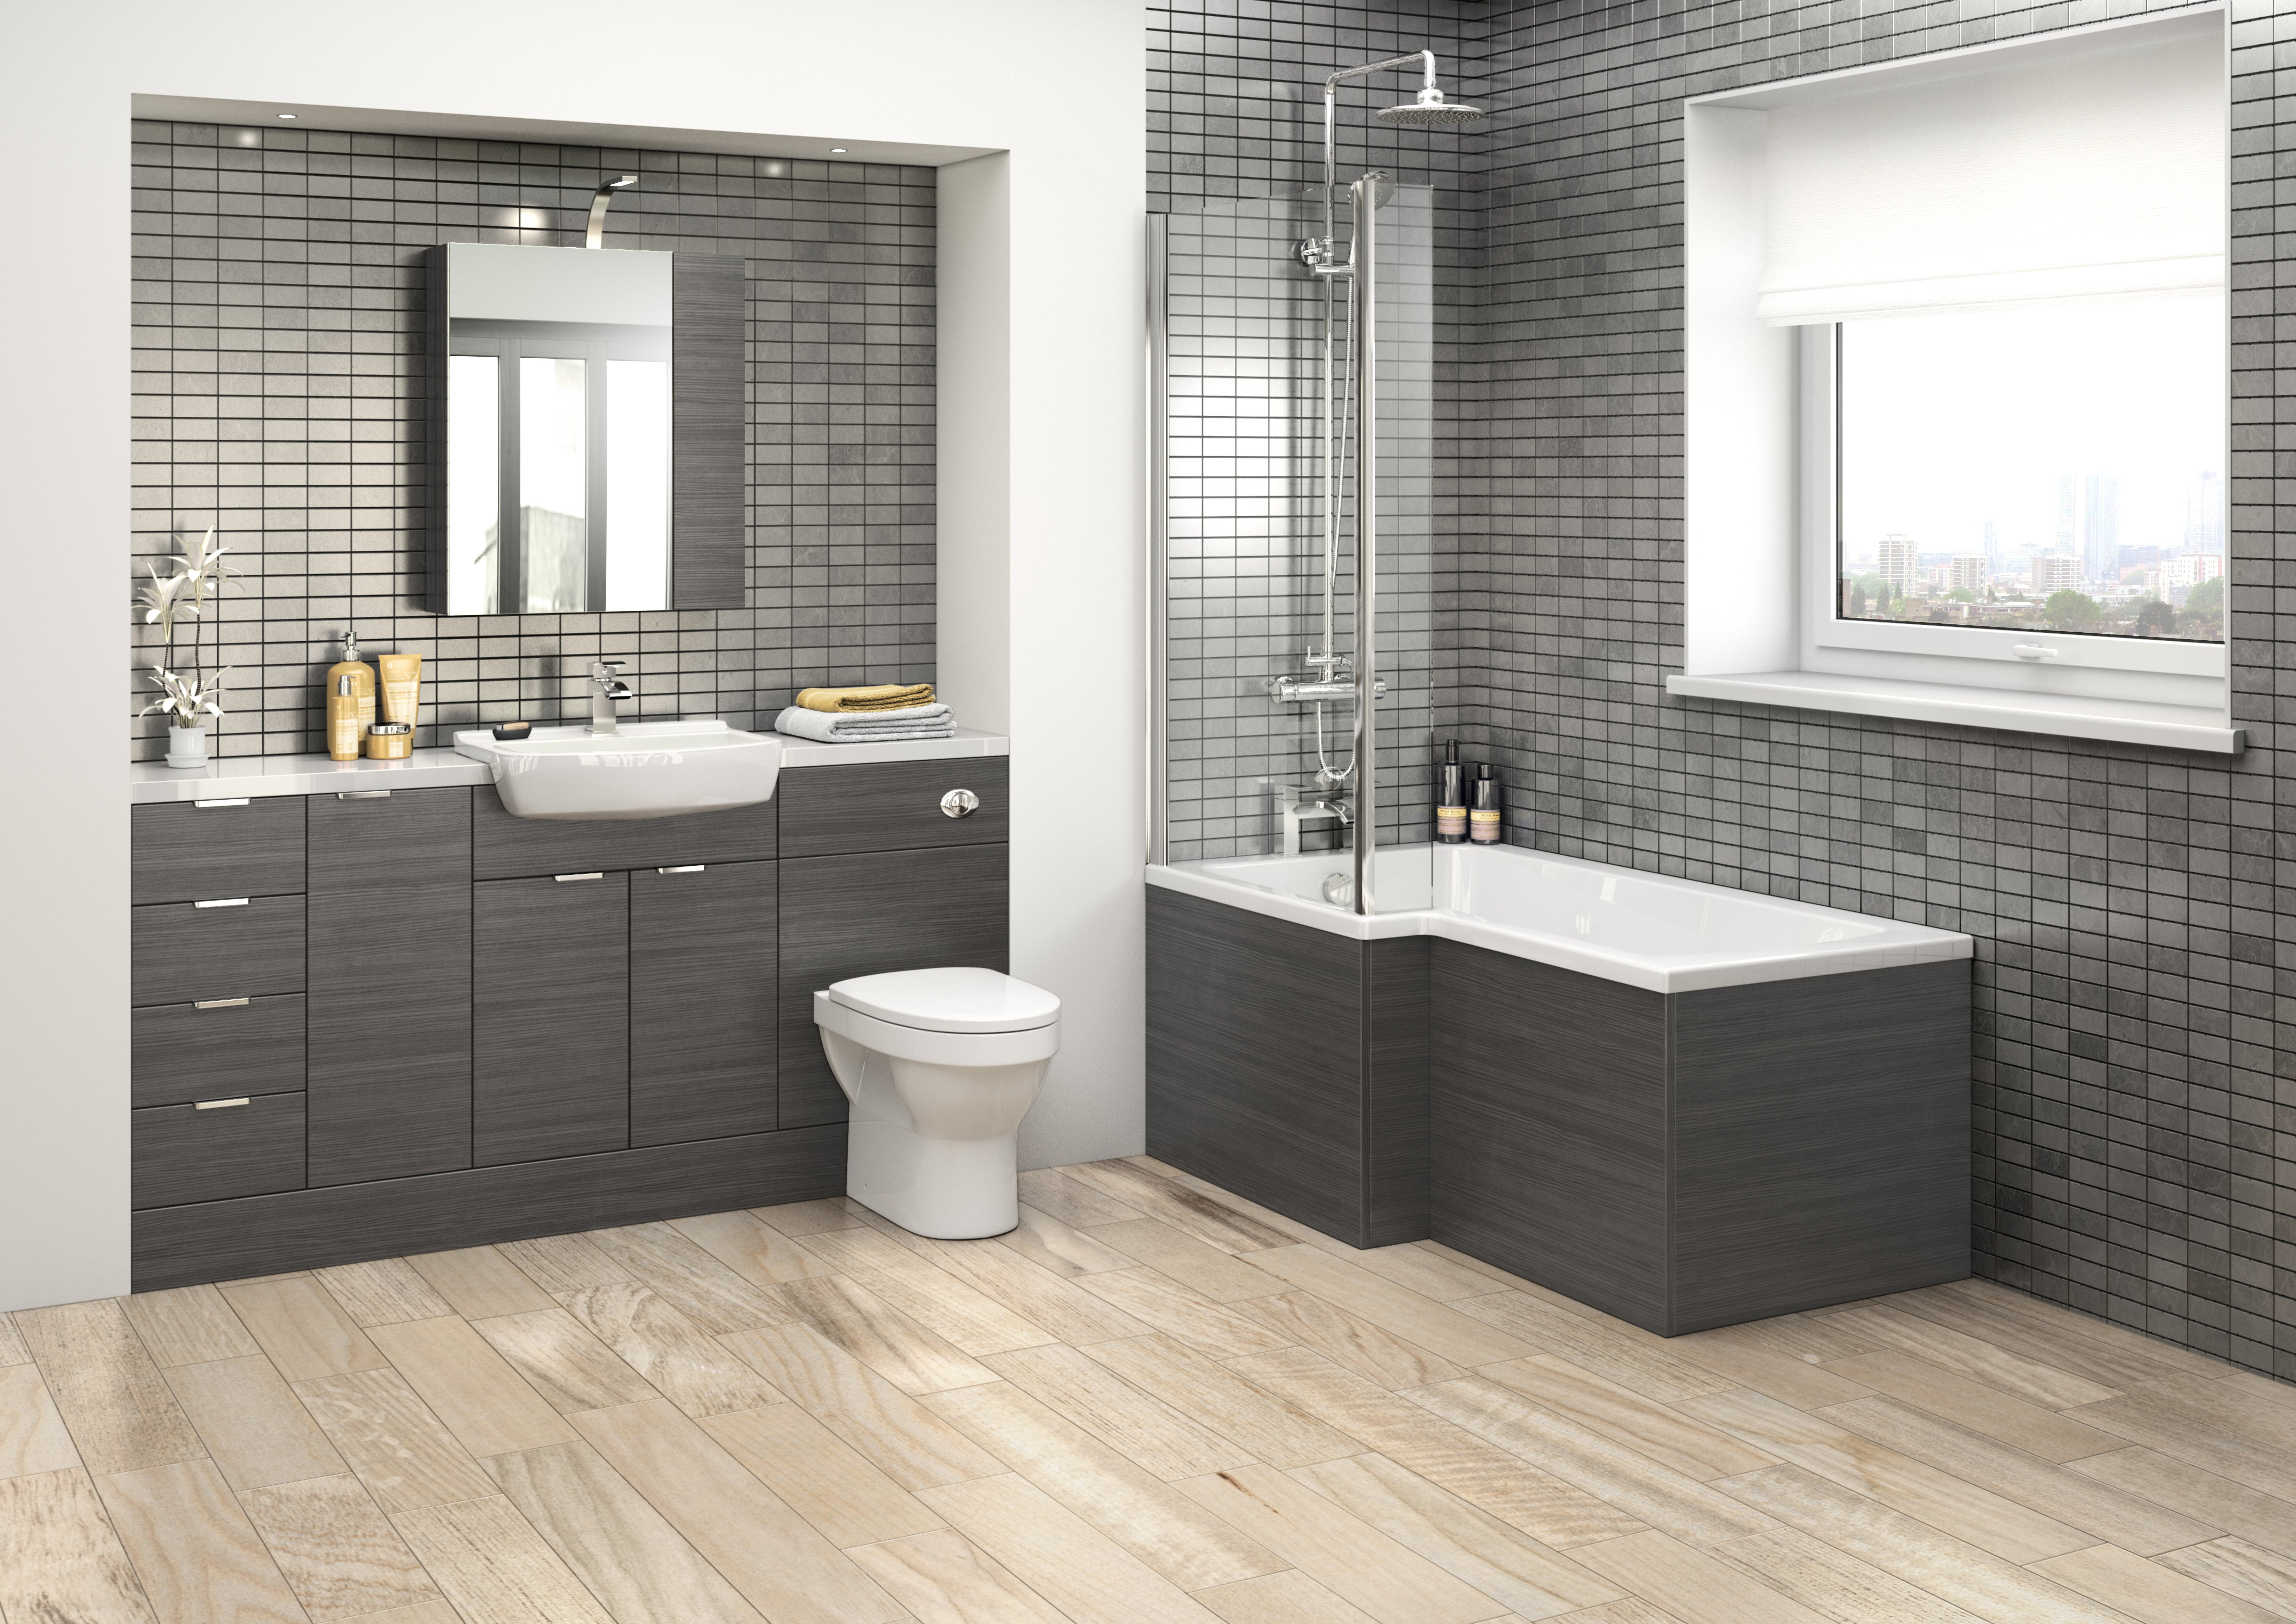 Bathroom design leeds the bathroom house for Bathroom design leeds